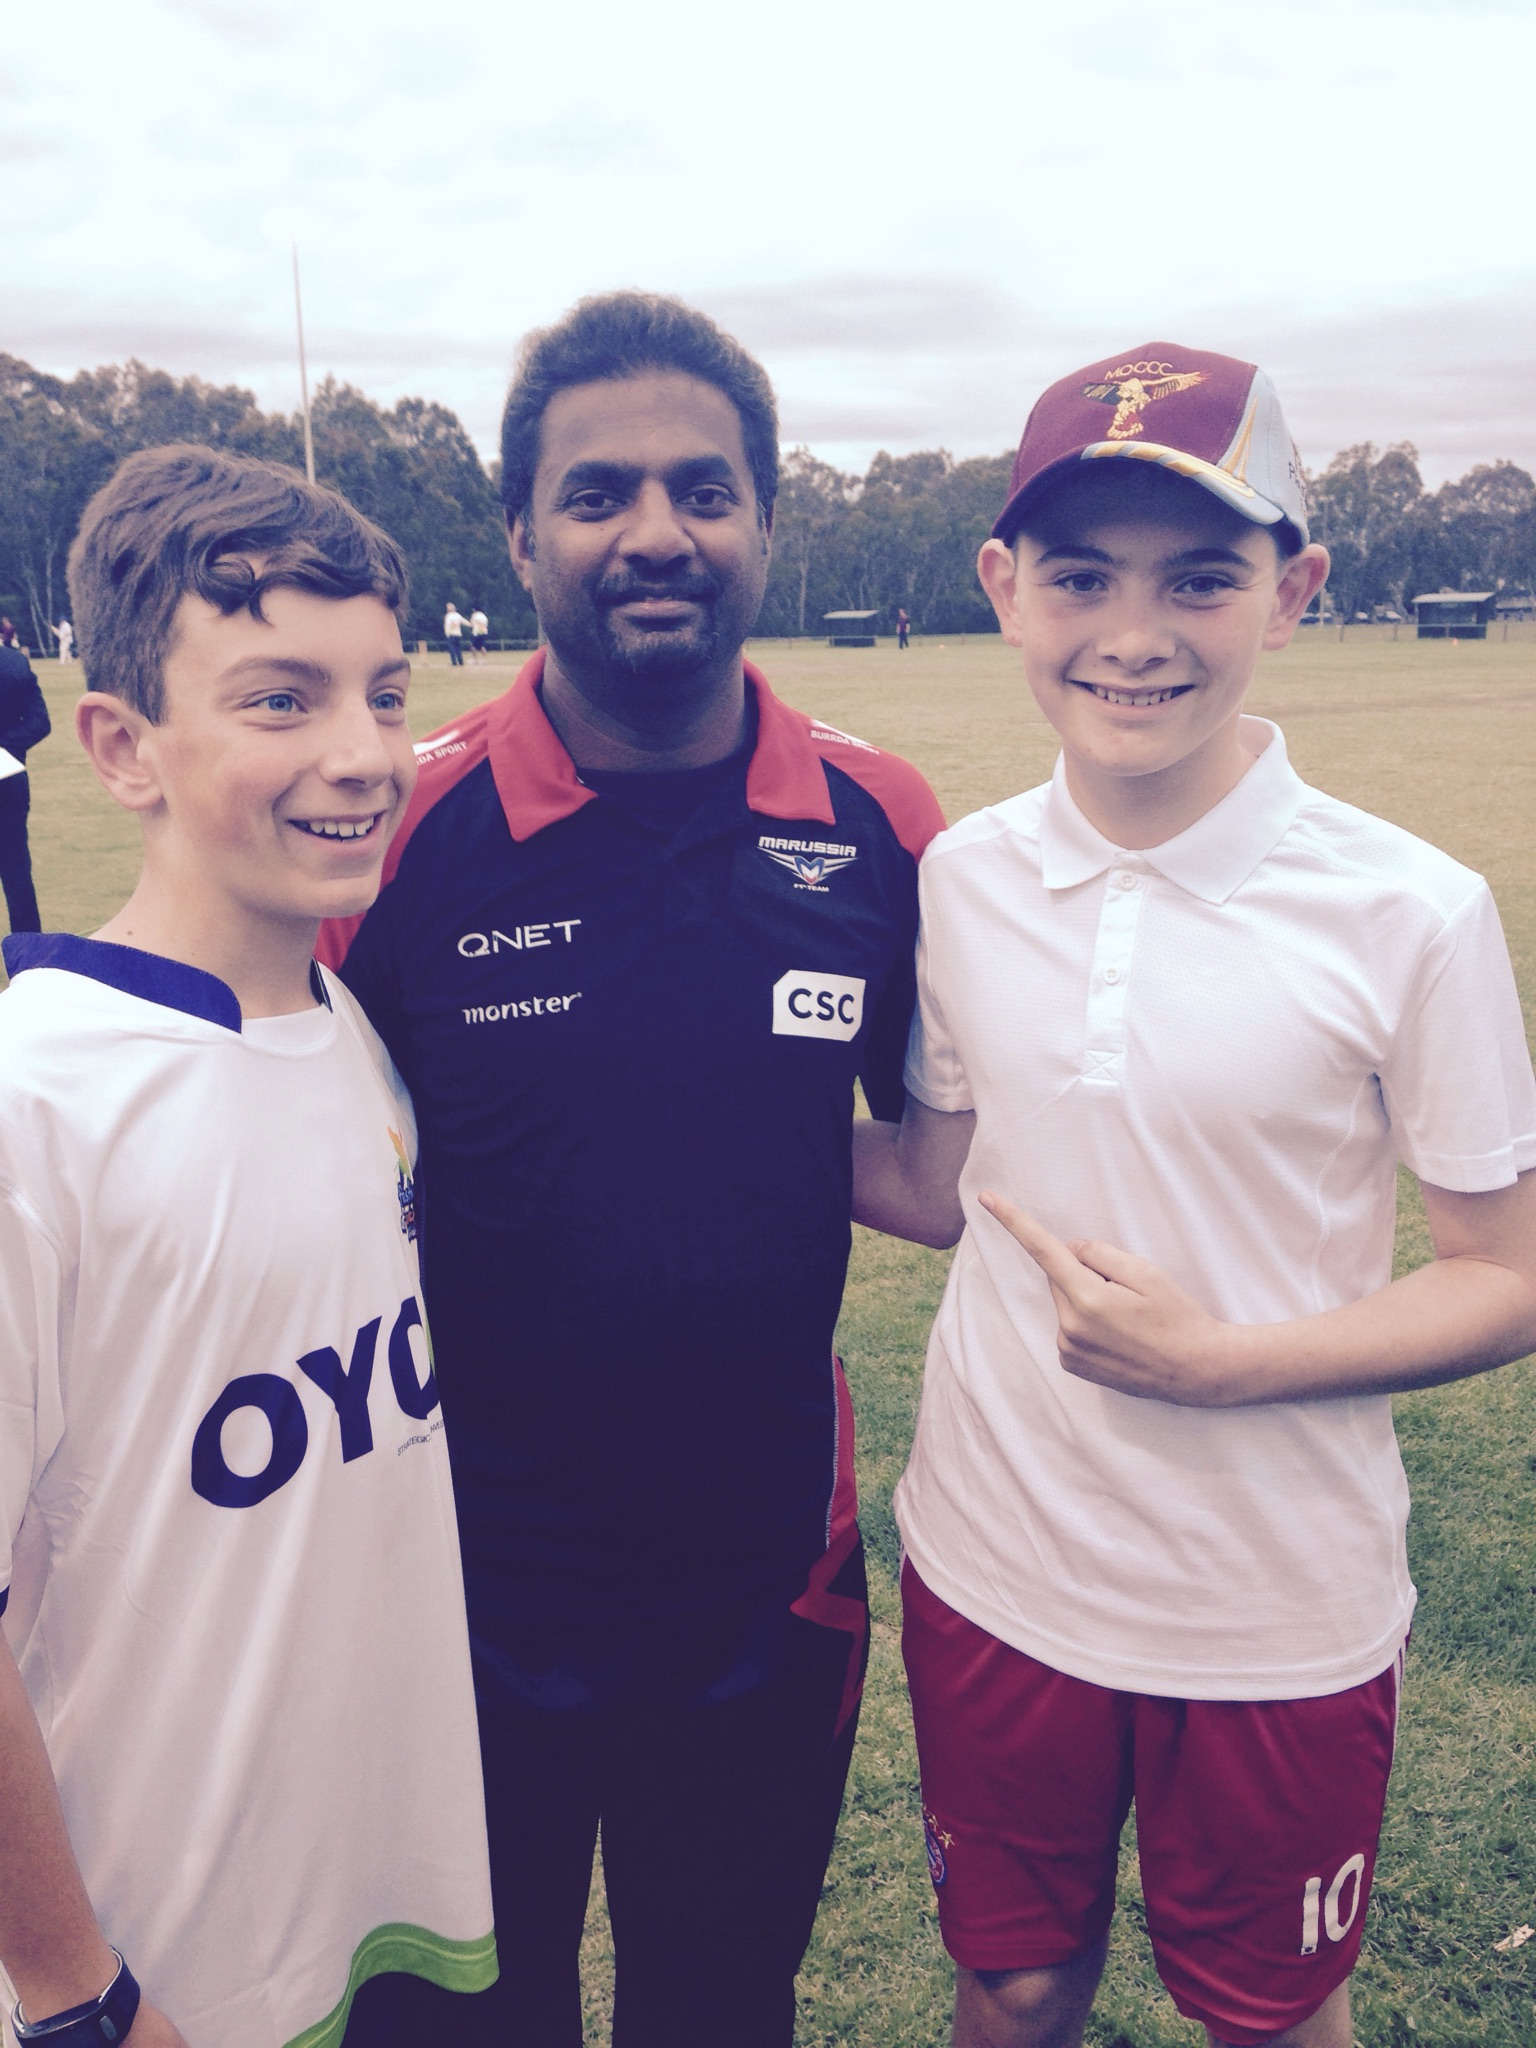 Juniors Daniel Perinetti and Joel Curry with Sri Lankan cricket legend (and world record holder for most test wickets)  Muttiah Muralitharan